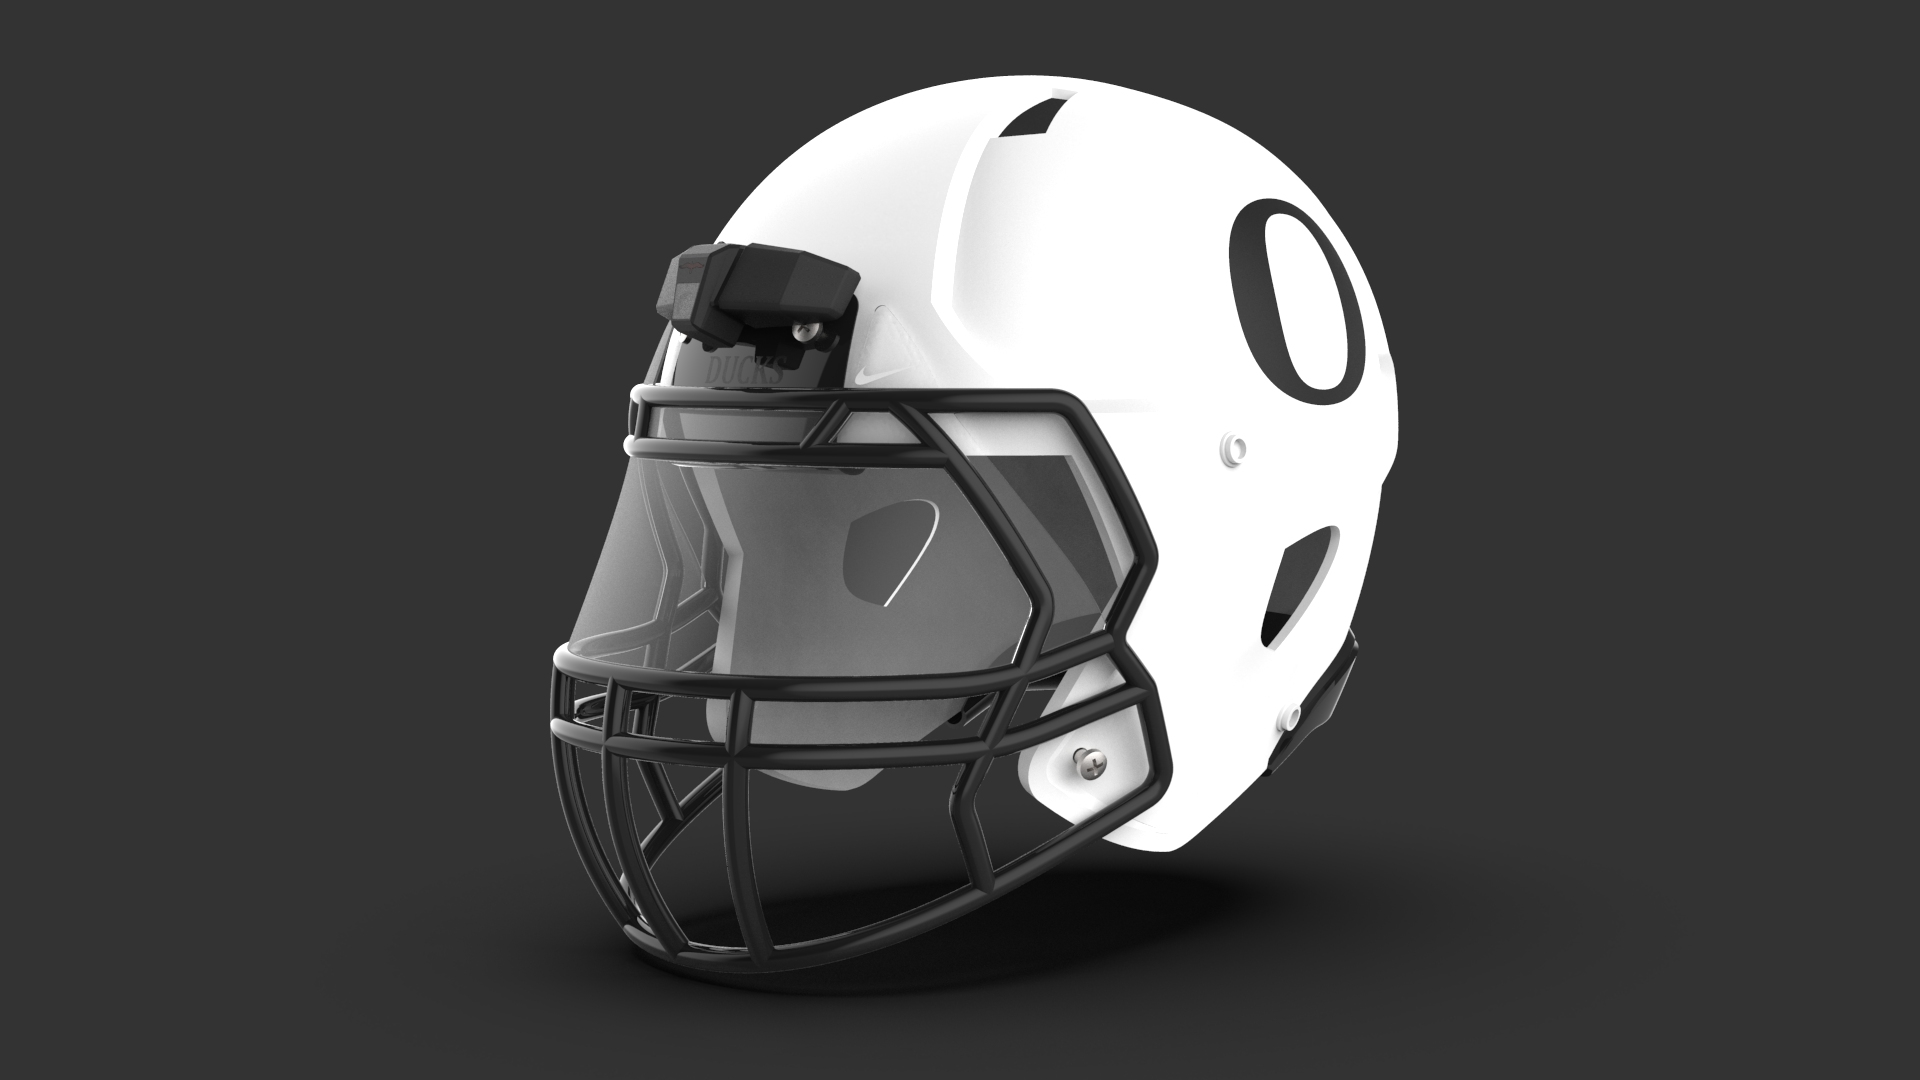 Helmet Camera Design Mounted